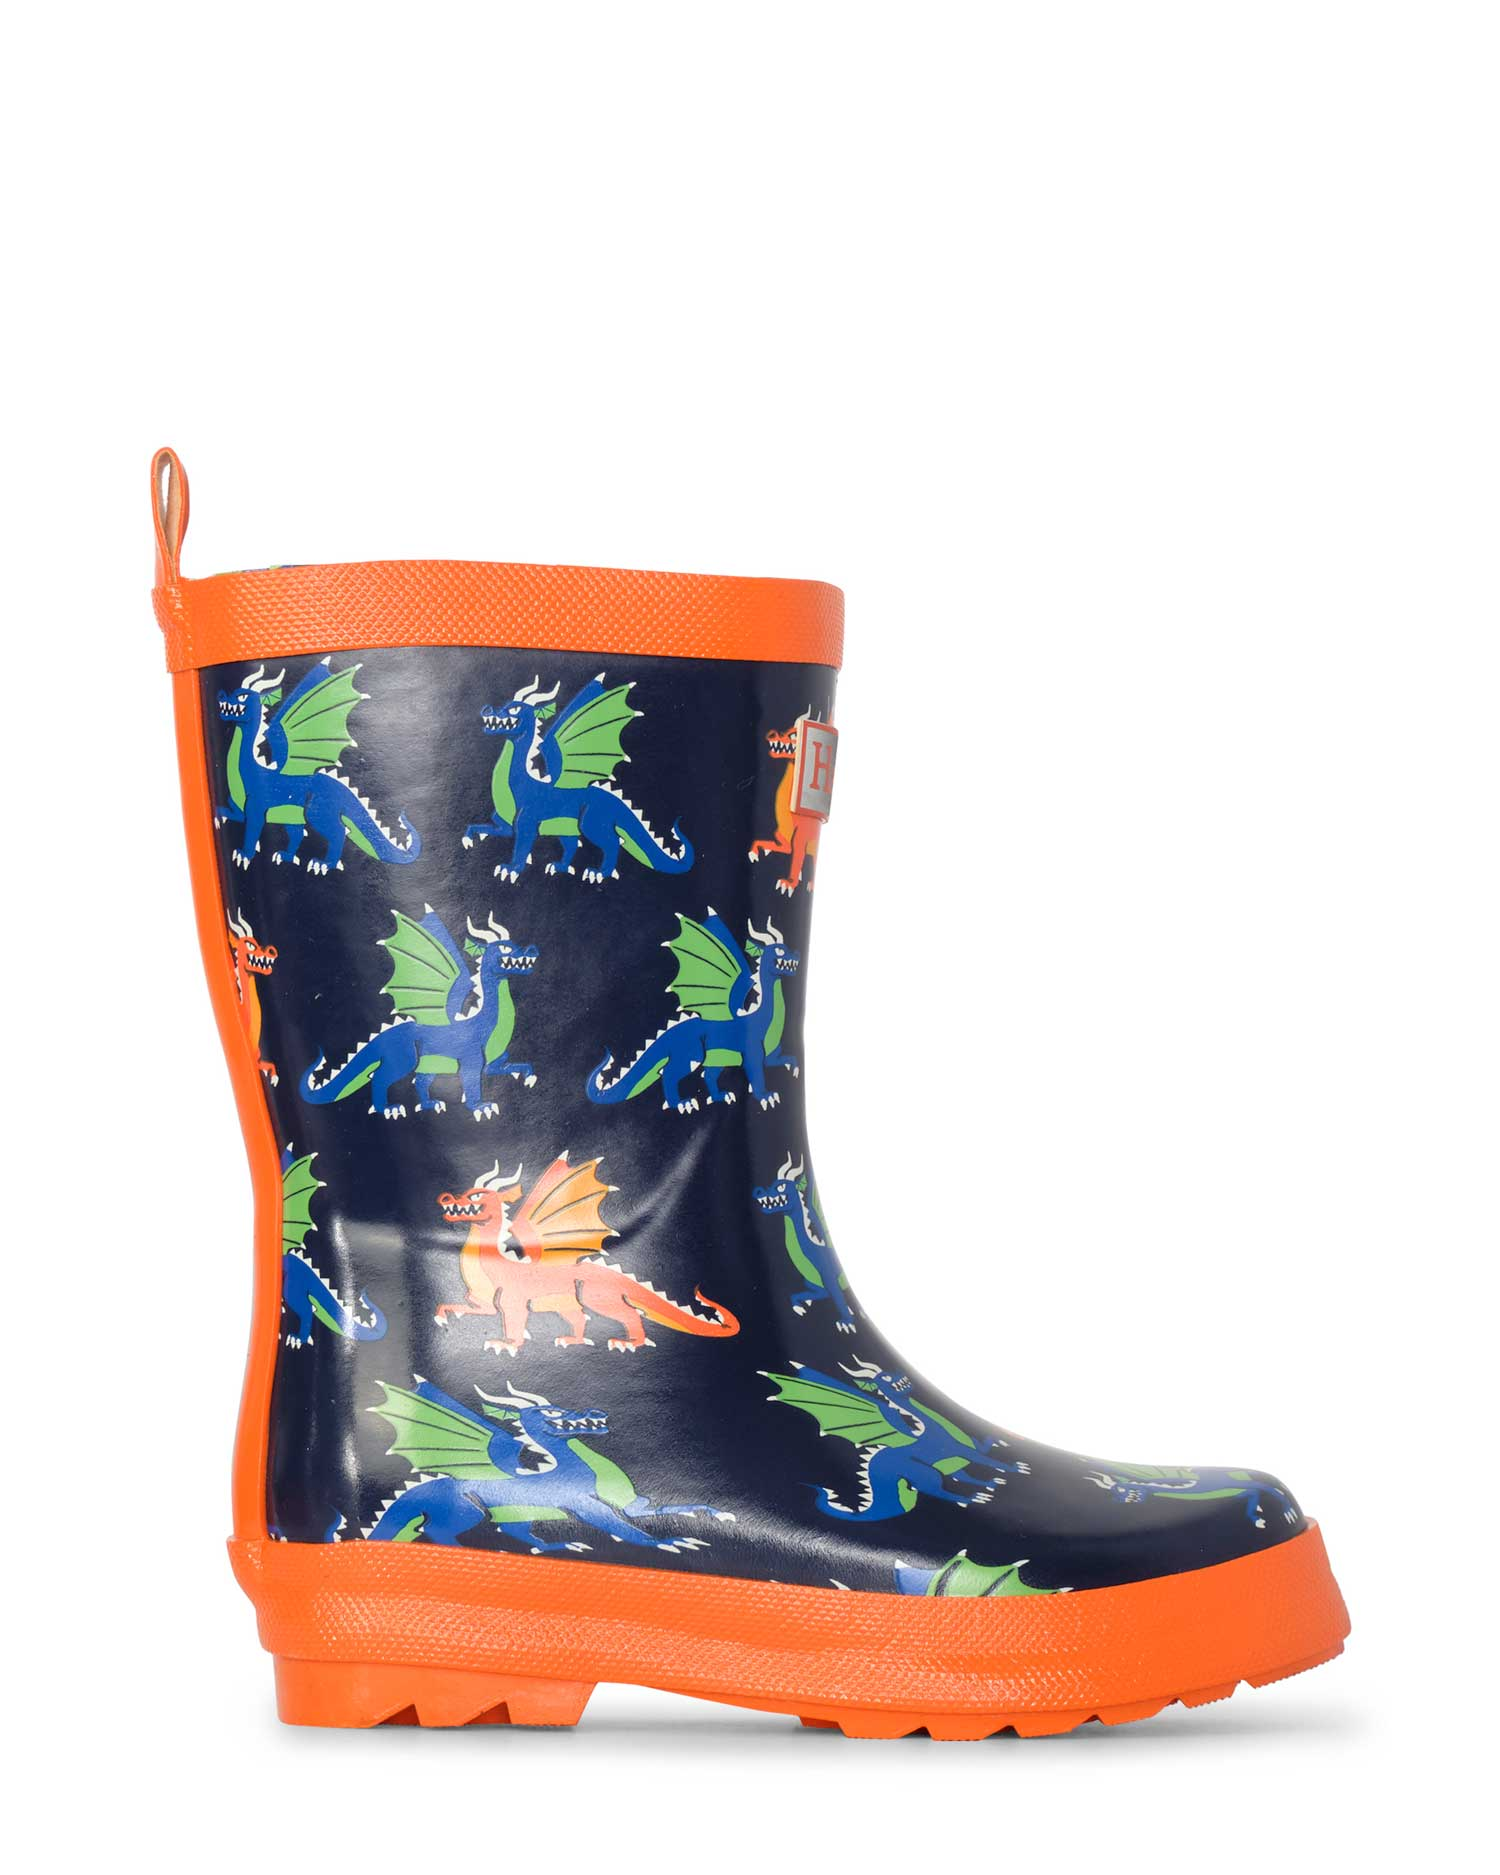 Dragons Shiny Gumboots